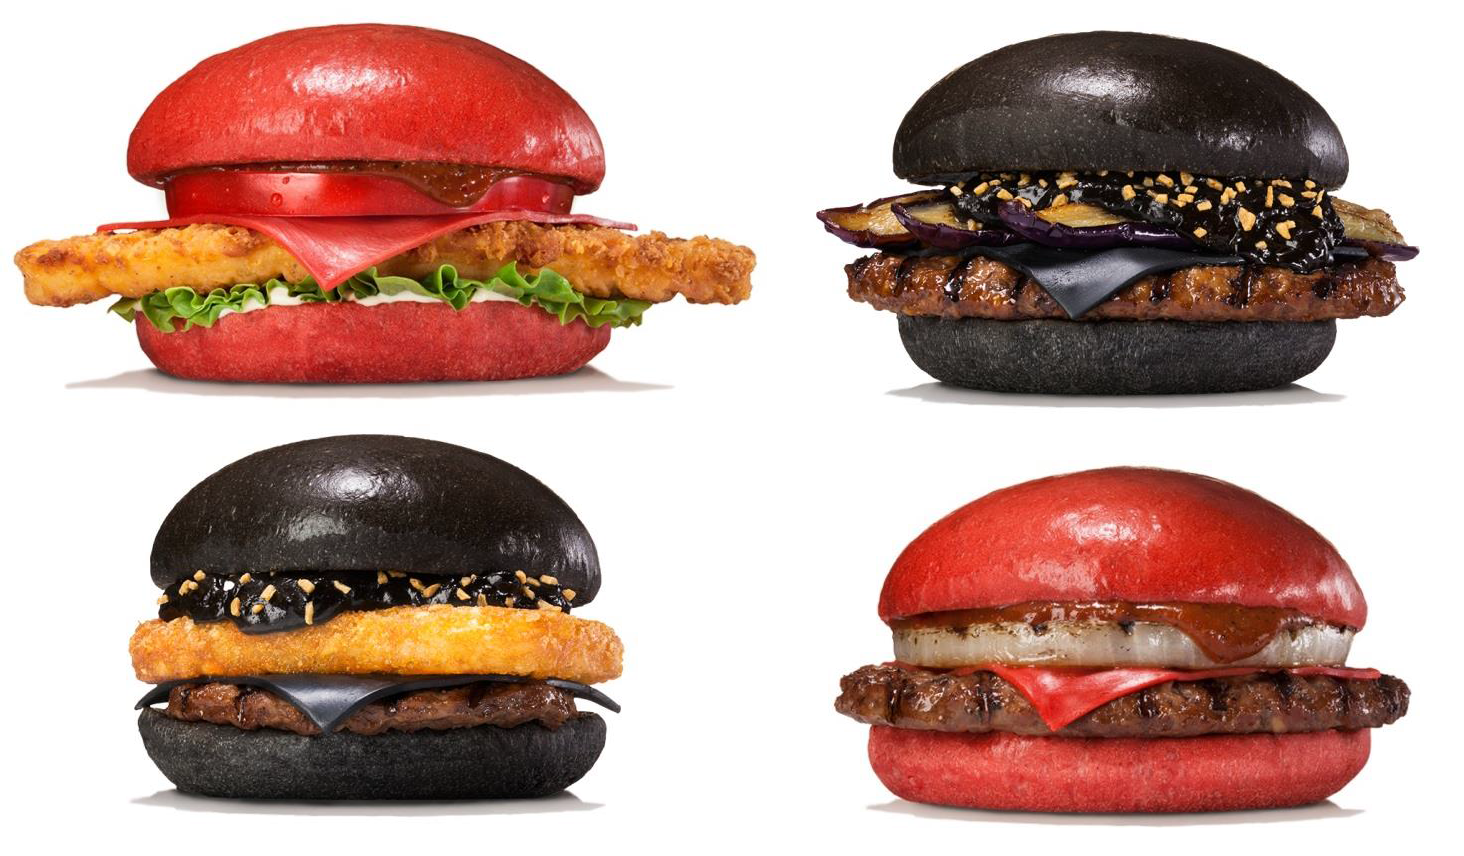 Red Is The New Black Burger As Burger King Rolls Out Sandwiches With Crimson Buns And Cheese Black Burger Red Burger Burger